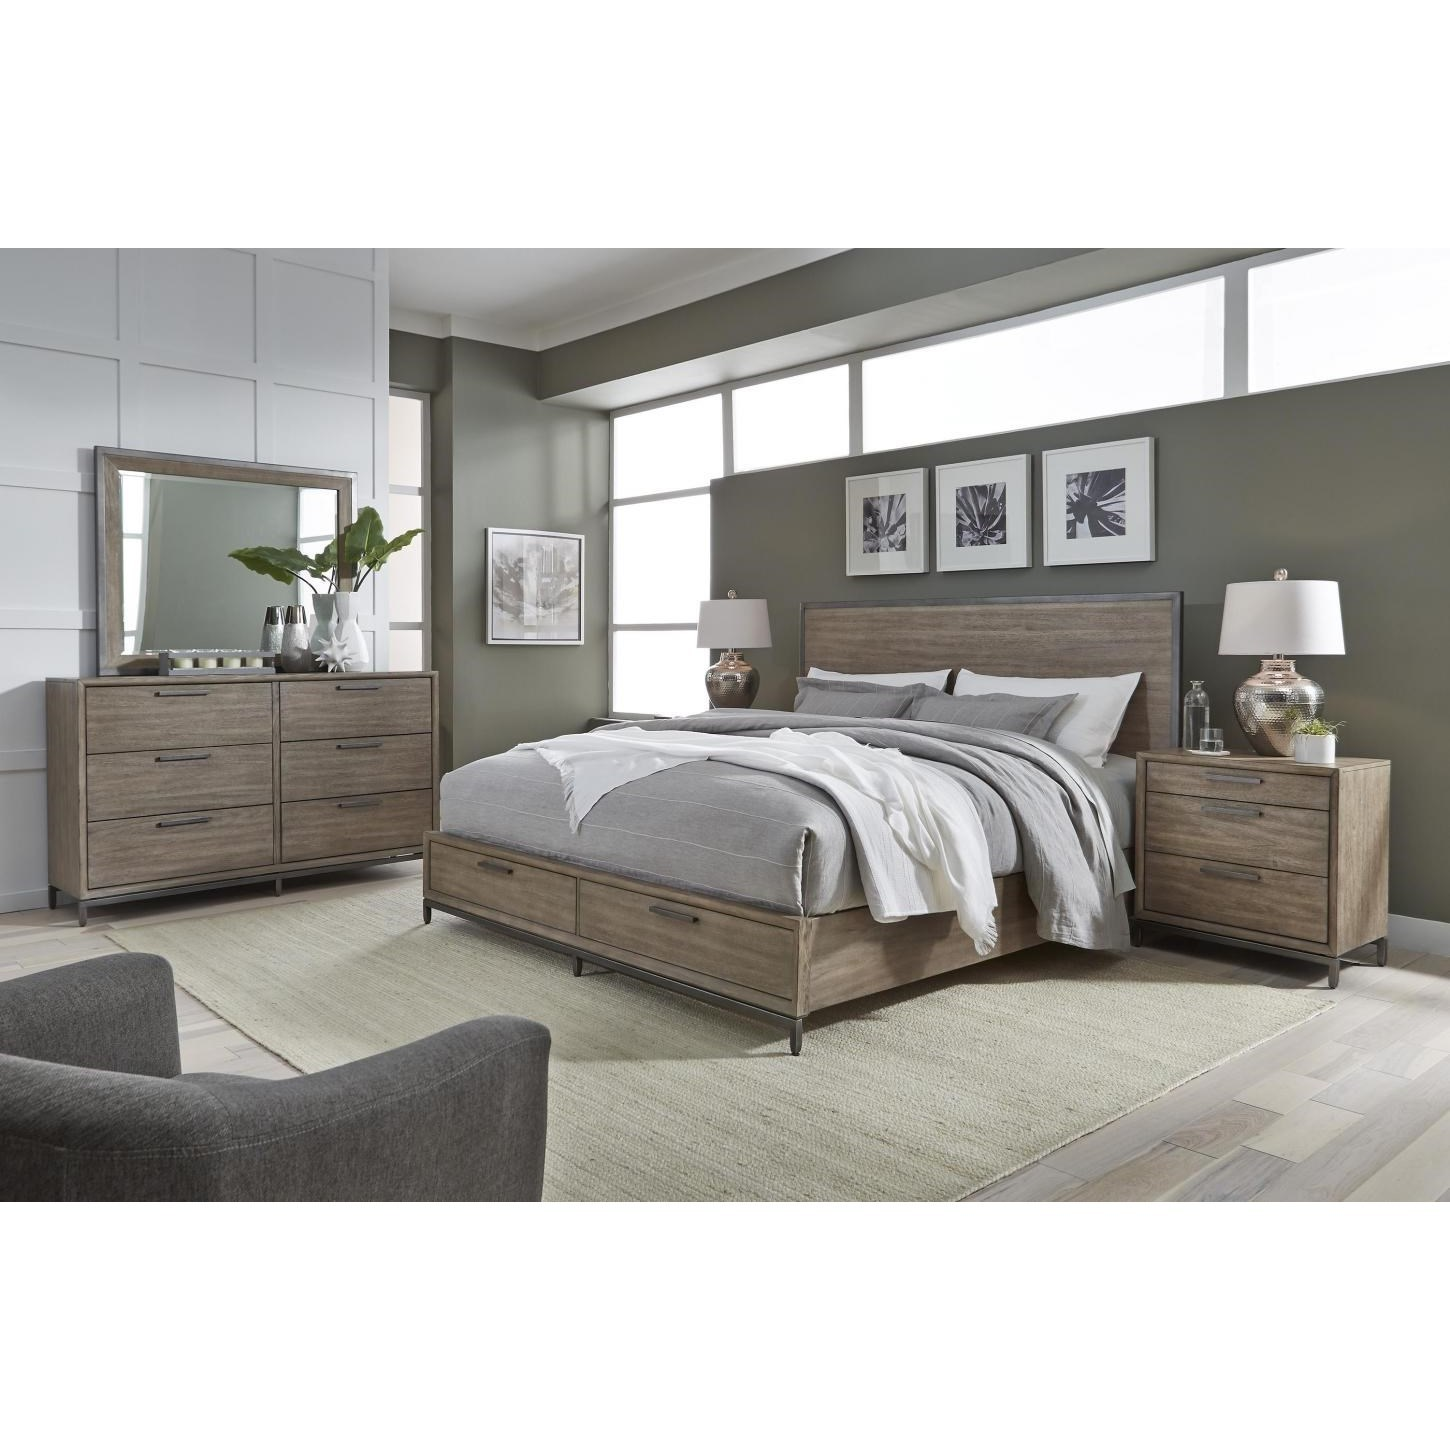 Trellis Queen Bedroom Group by Aspenhome at Fashion Furniture